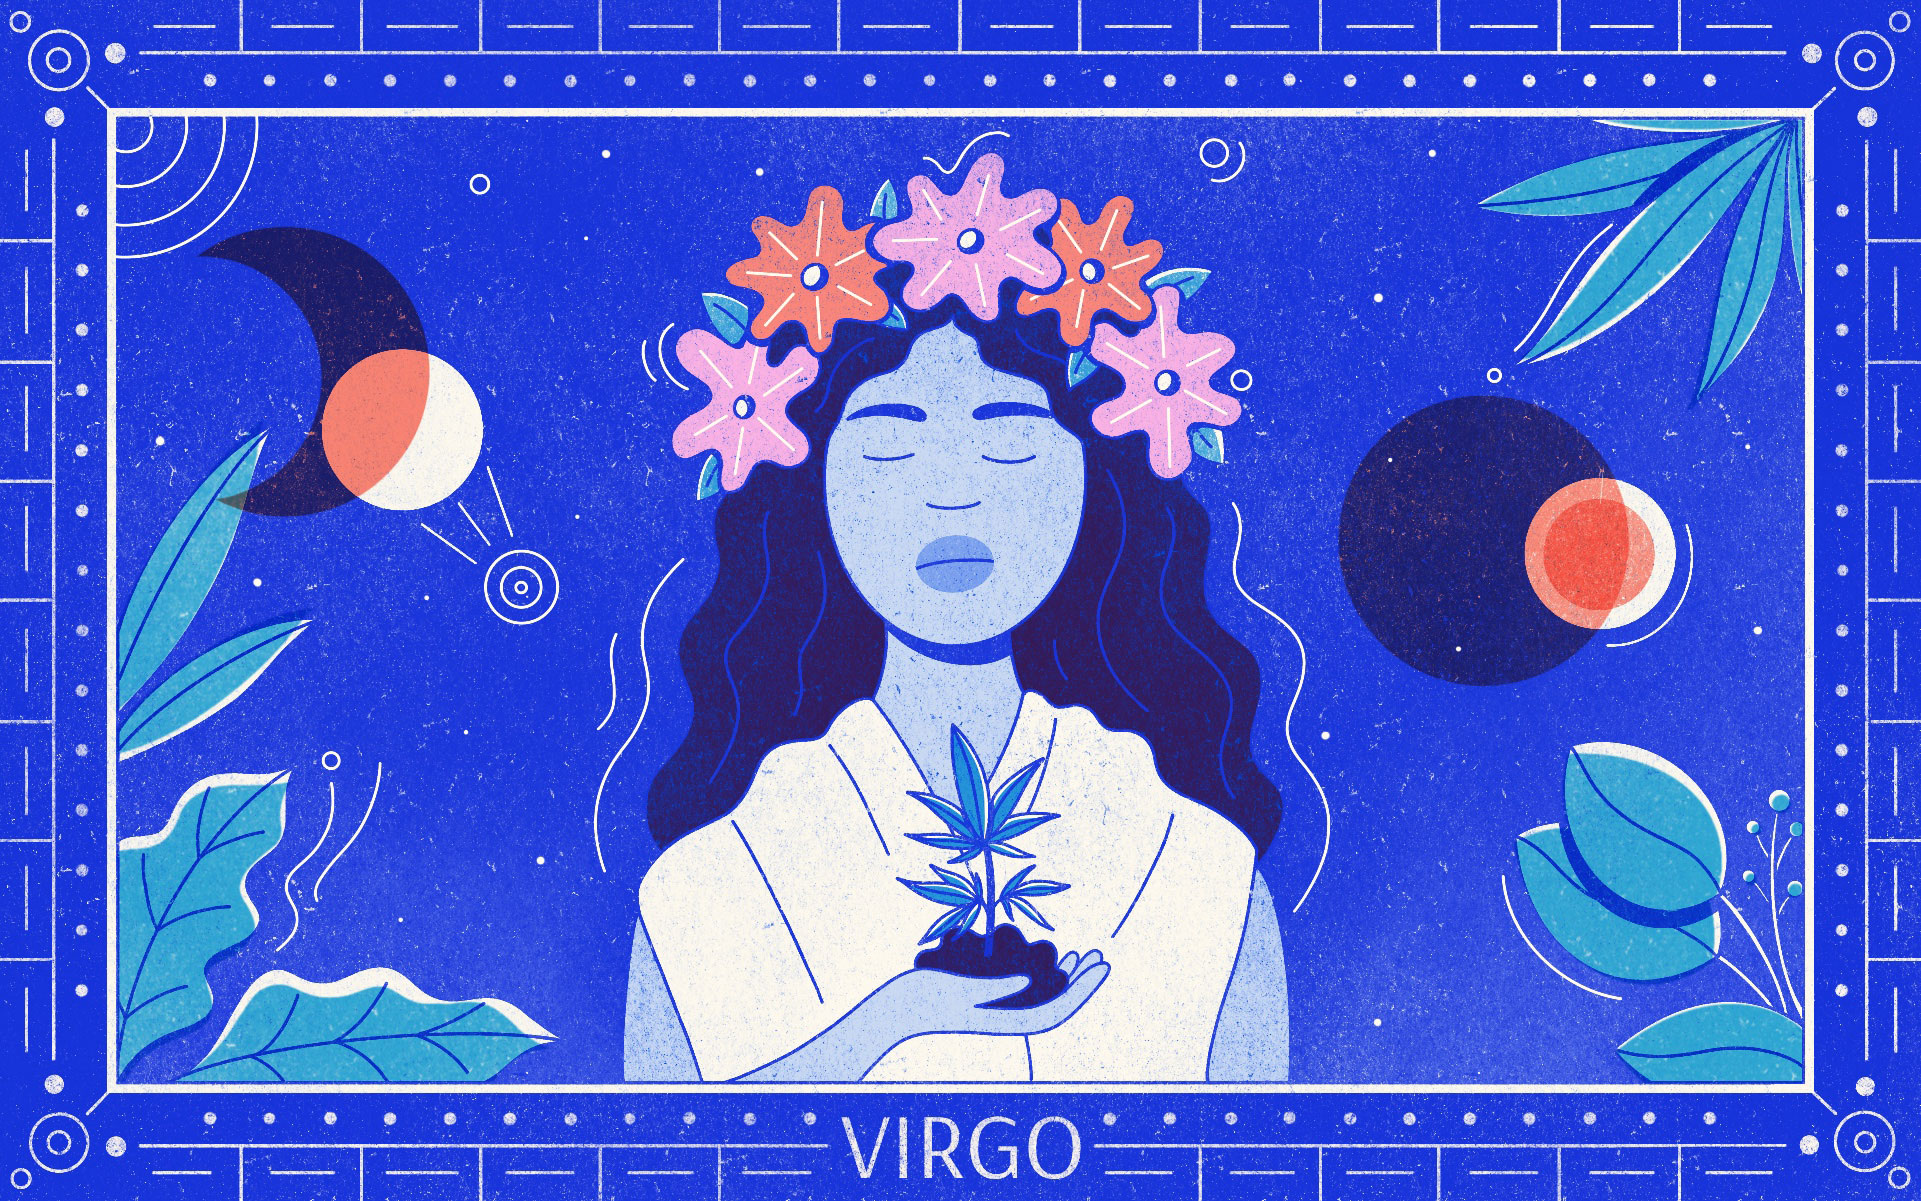 VIRGO web Gillian Levine - Star signs and cannabis strains: July 2020 horoscopes